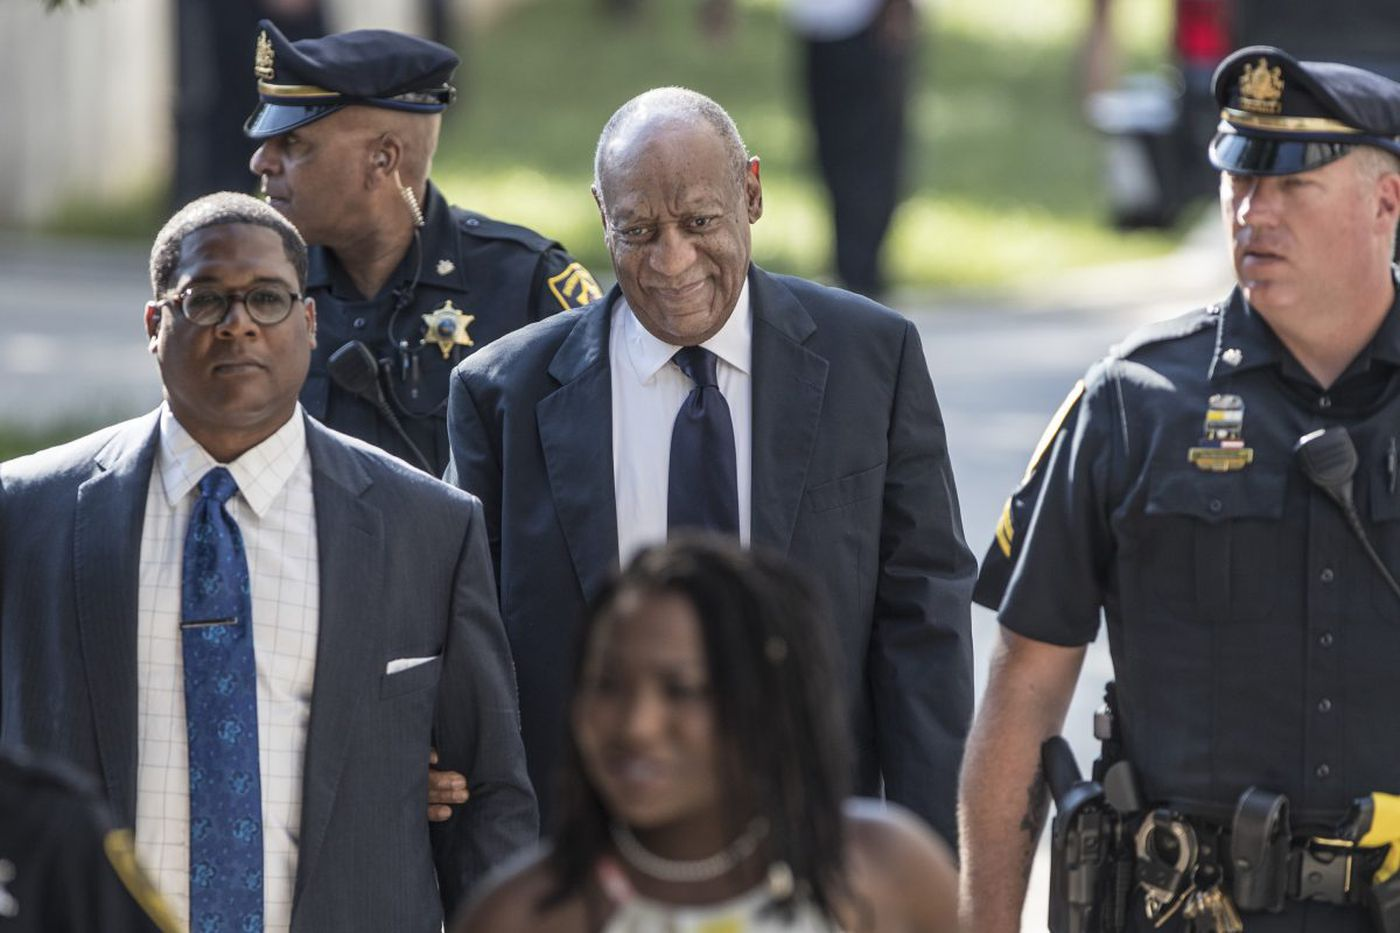 After 16 hours, Cosby jury breaks with no verdict